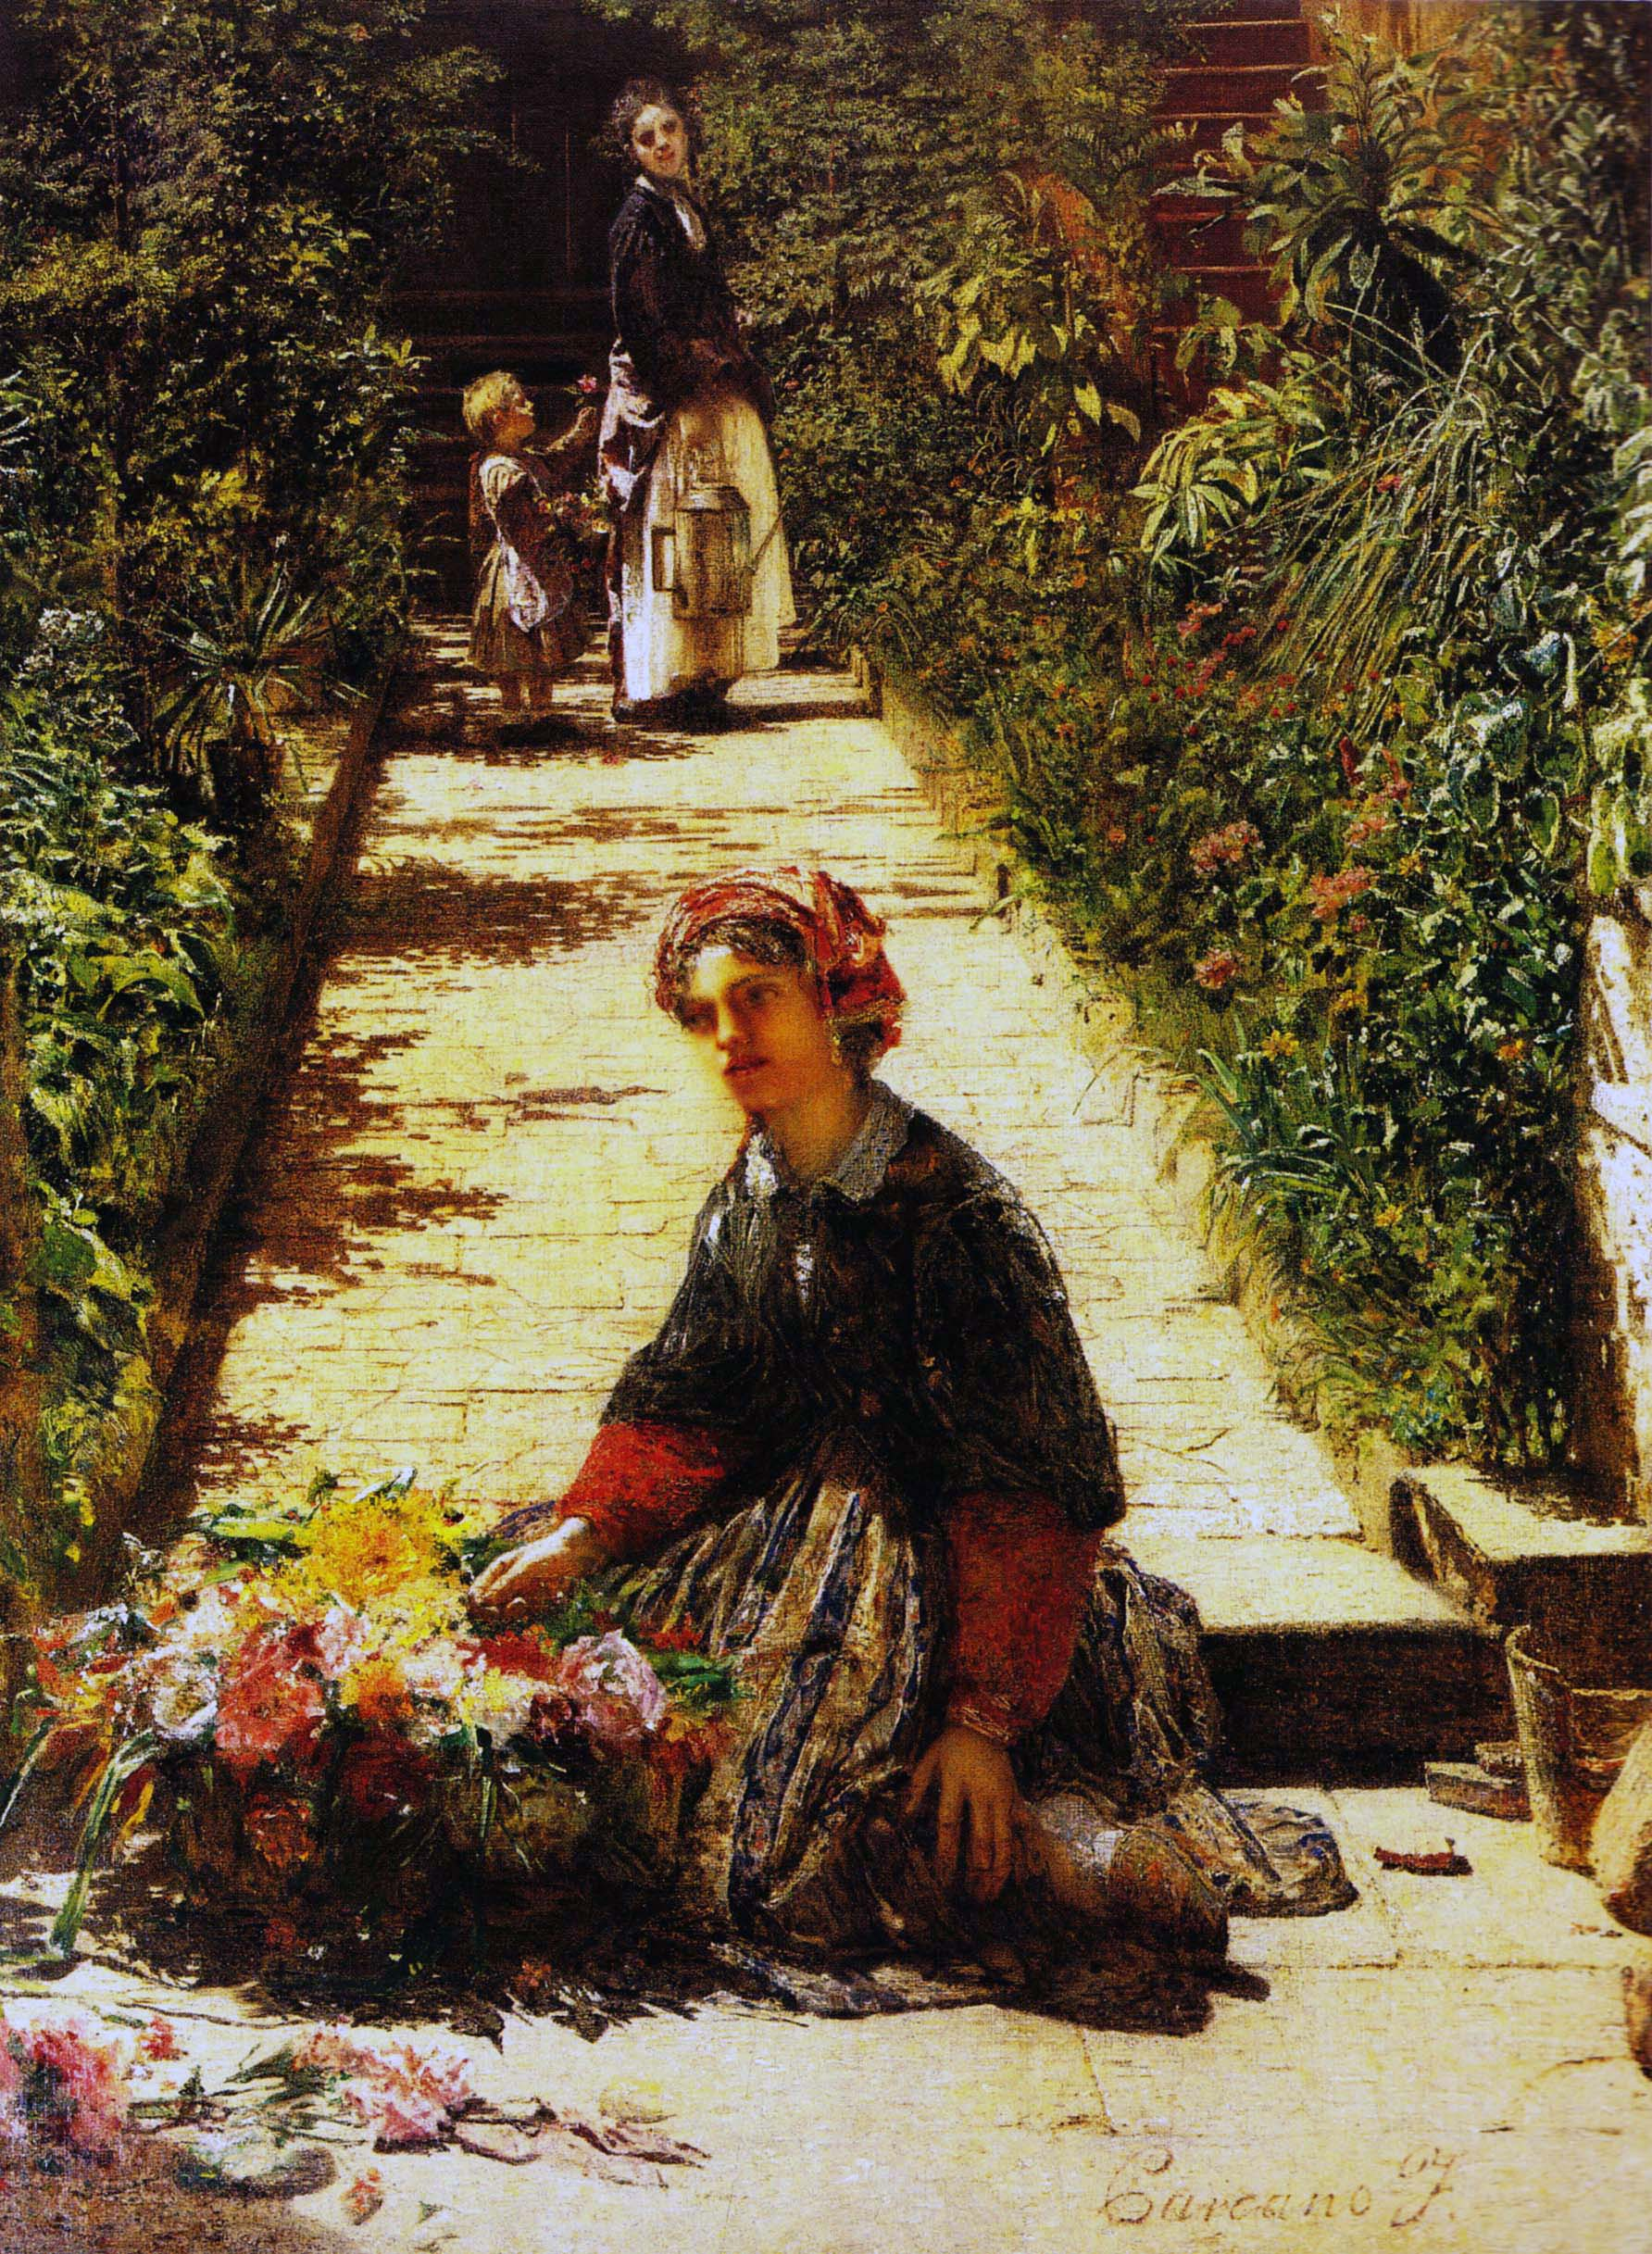 Scene di vita quotidiana filippo carcano for Giardino o cortile